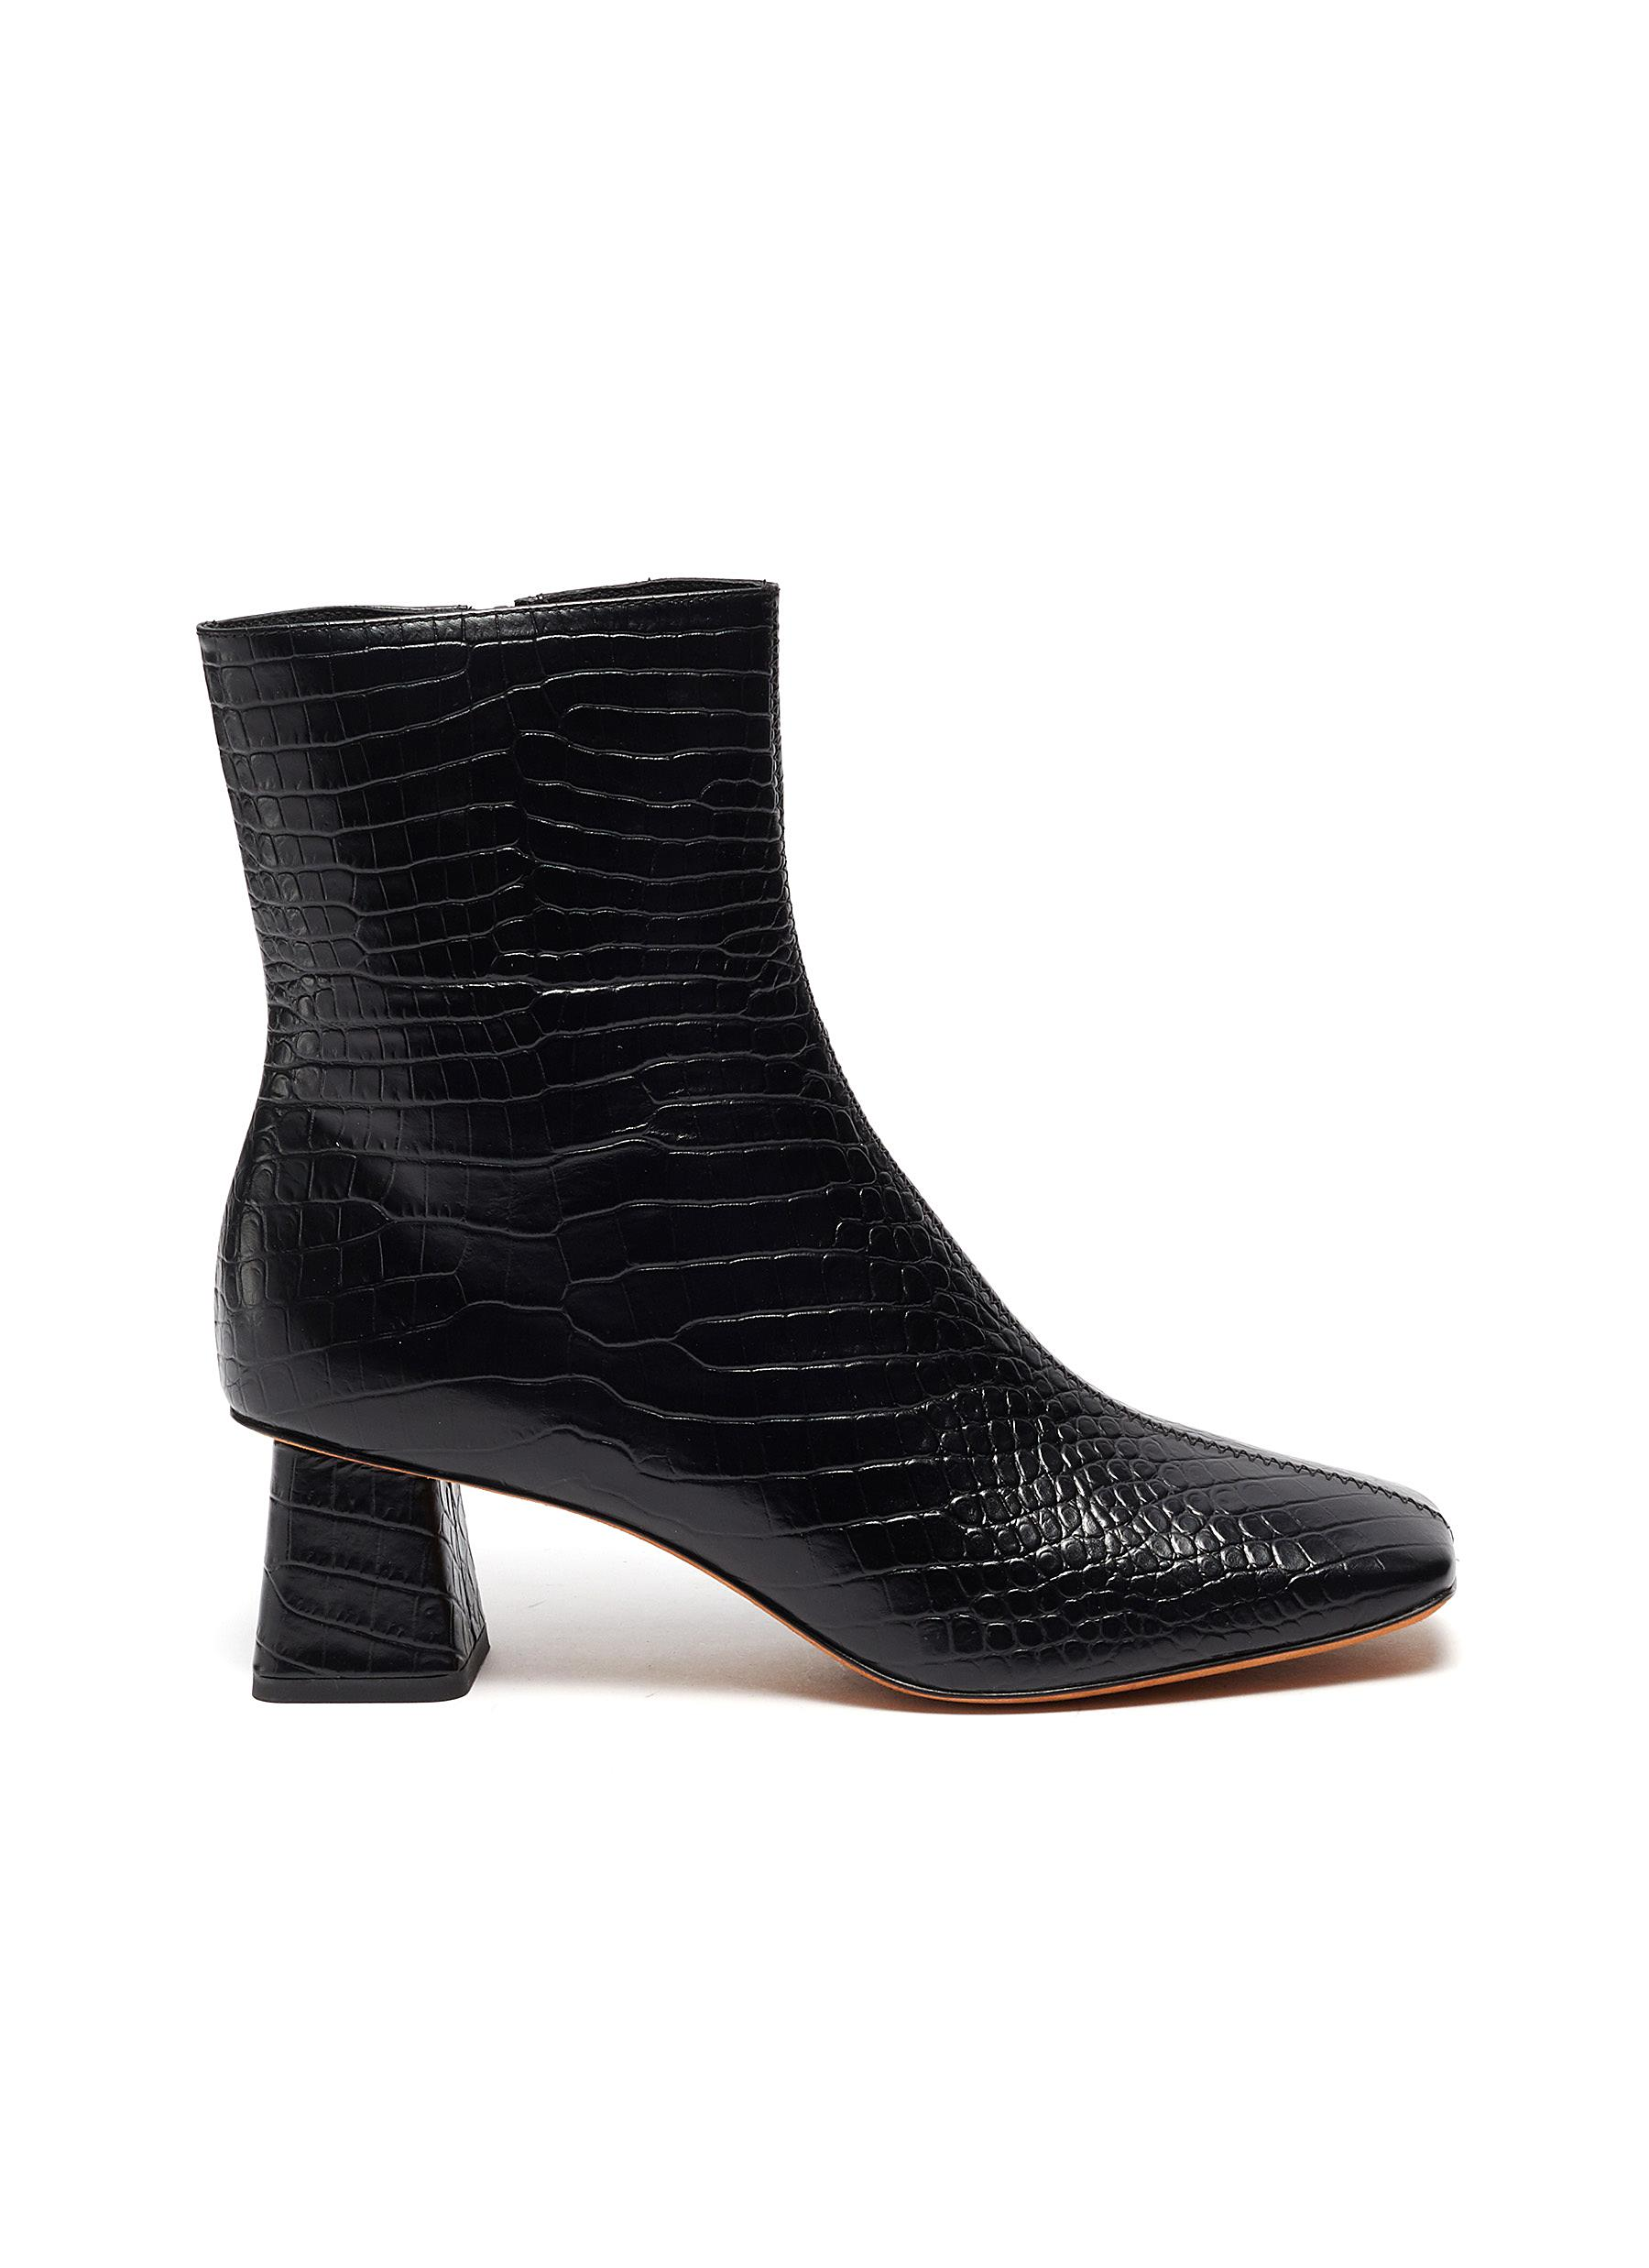 Vince 'KOREN' CROC-EMBOSSED LEATHER ANKLE BOOTS